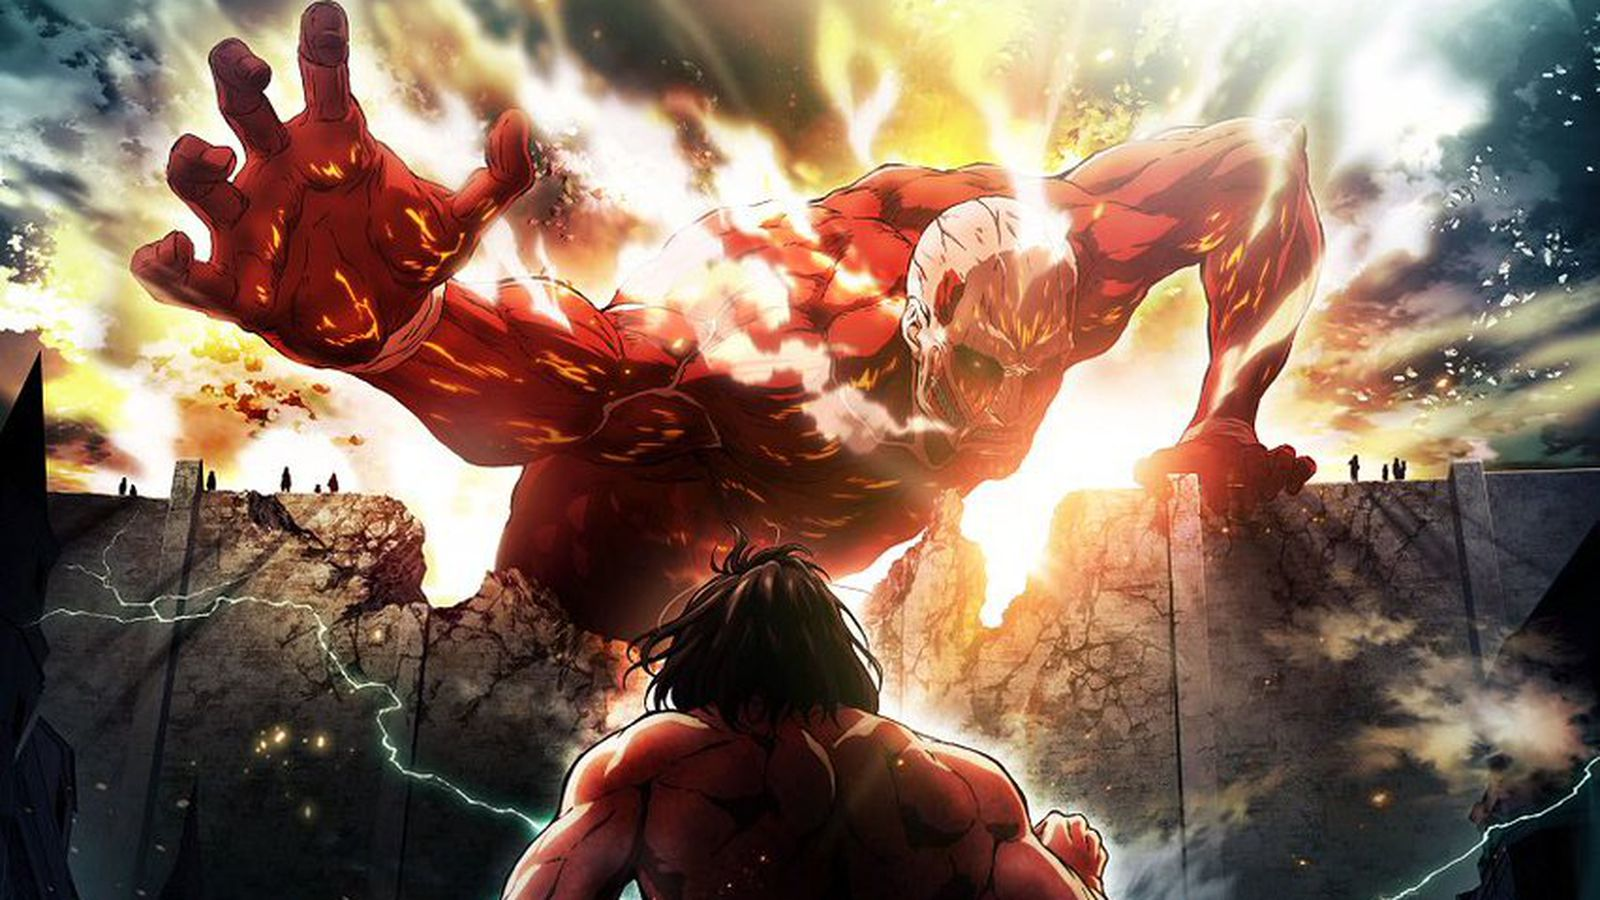 20 Attack On Titan Quotes From Season 1 To 3 Anime Everything Online